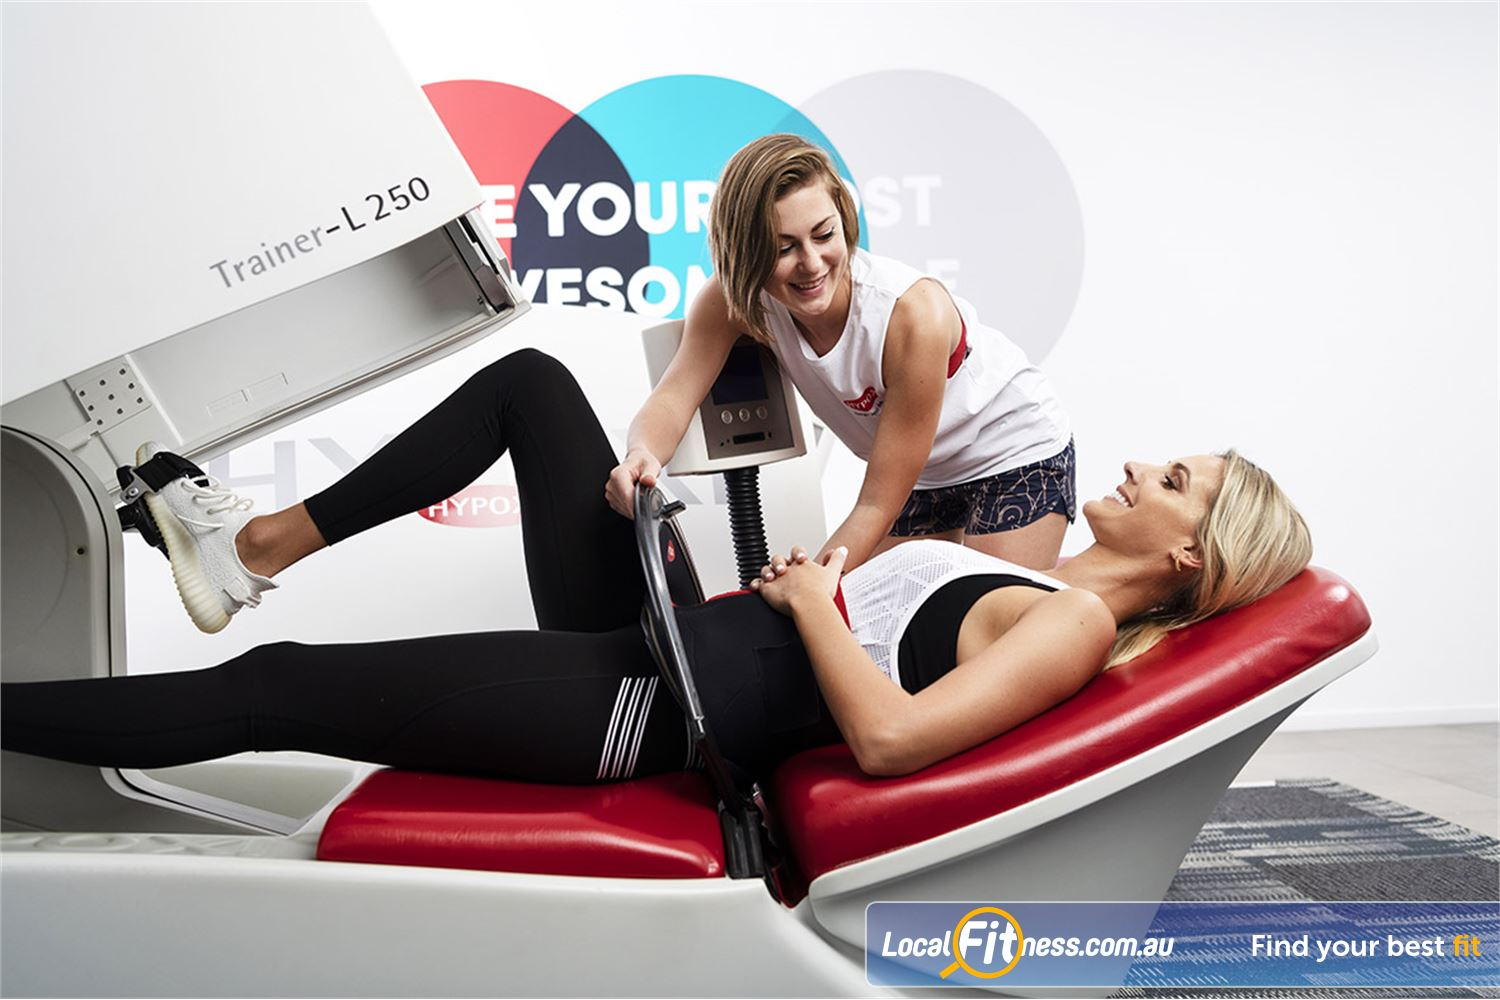 HYPOXI Weight Loss Westbourne Park Welcome to the HYPOXI Crossroads weight-loss studio.